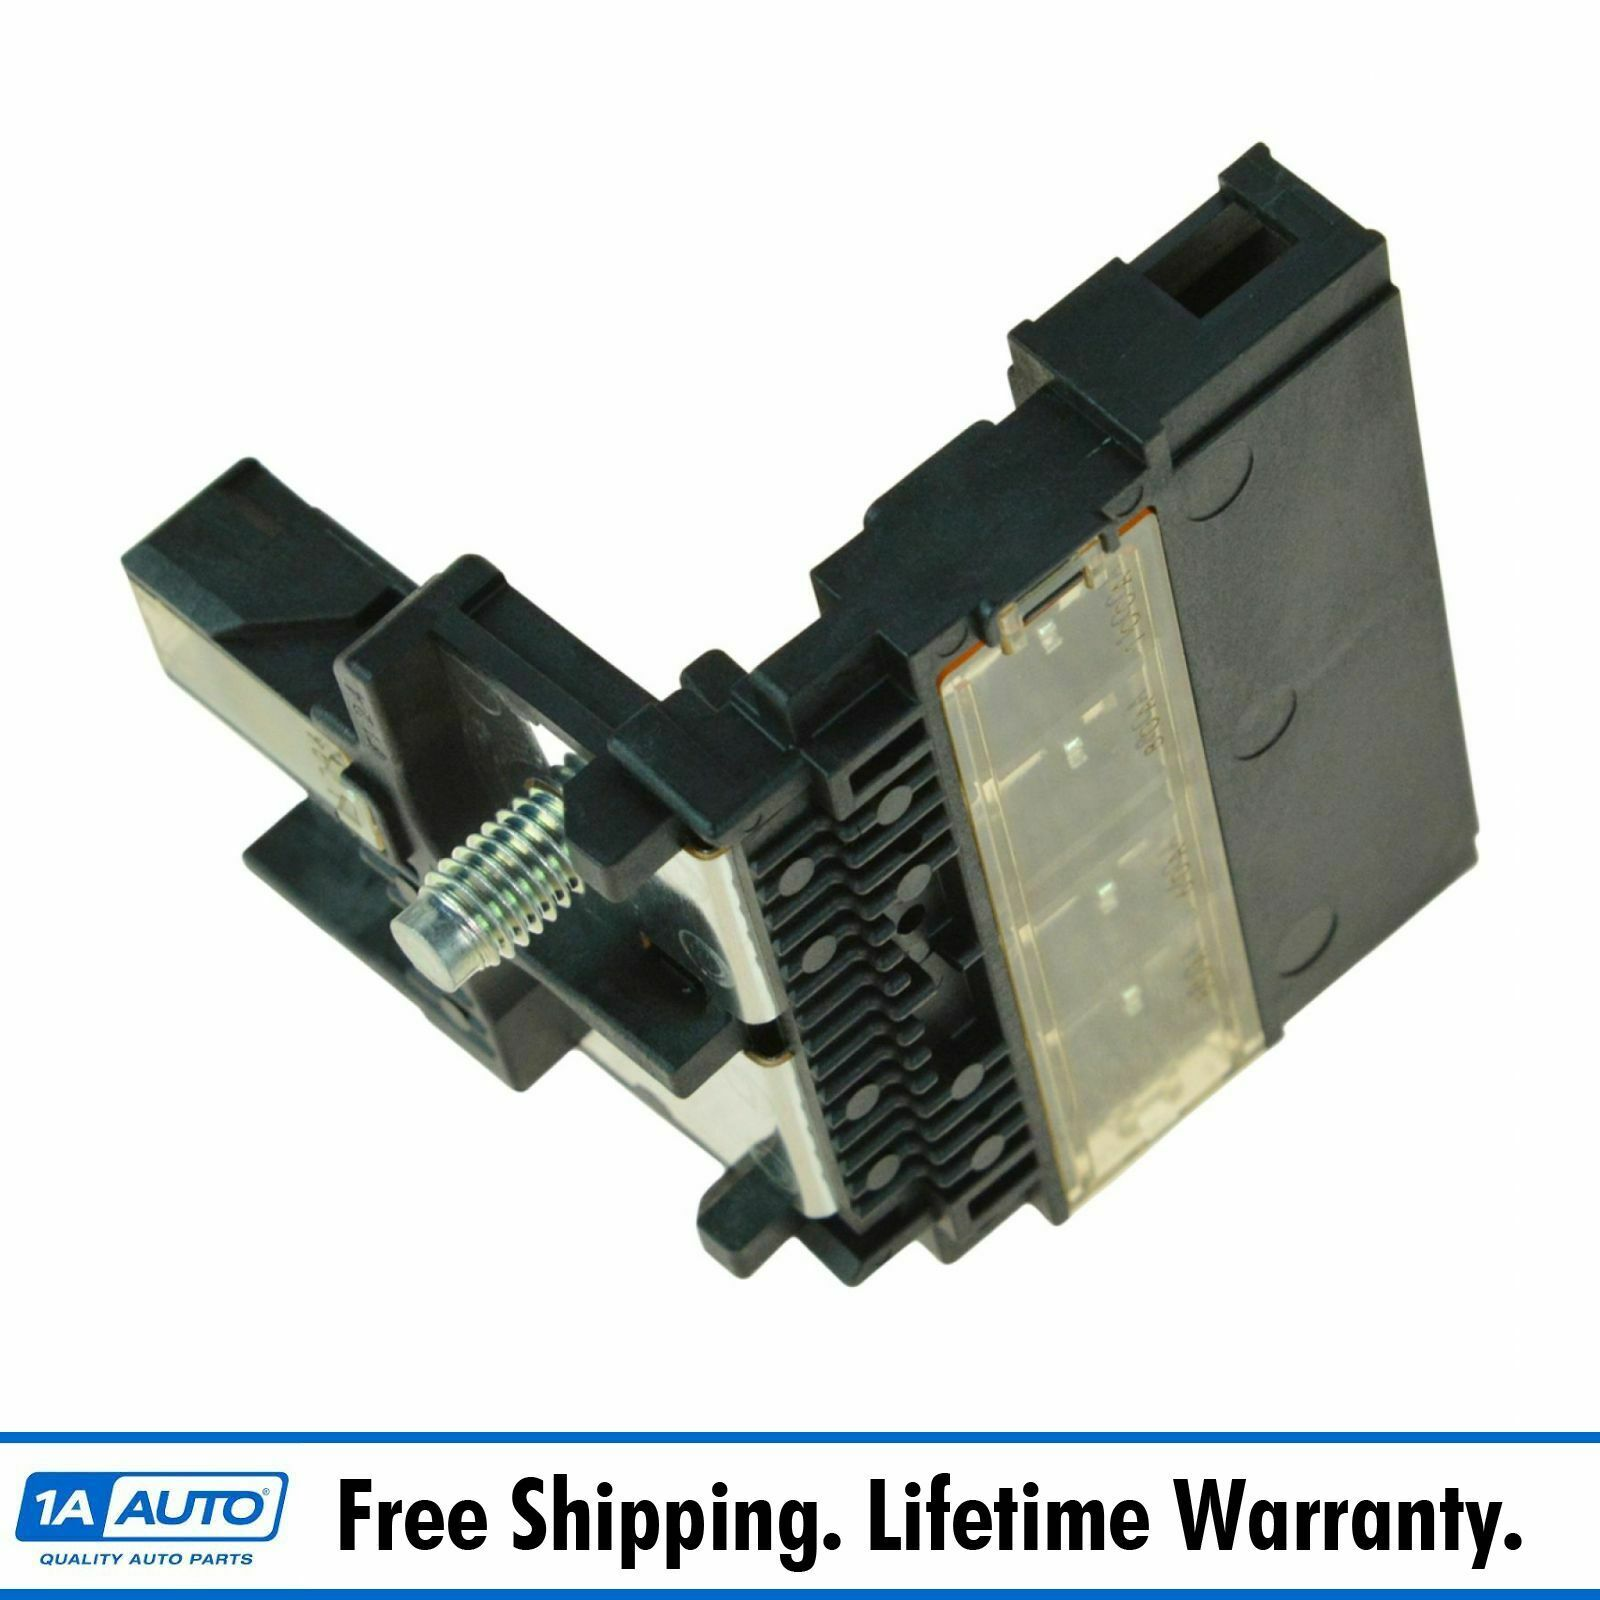 Oem 24380 79912 Fuse Block Holder Connector Link For Murano Note 2011 Maxima Box 1 Of 7only 2 Available